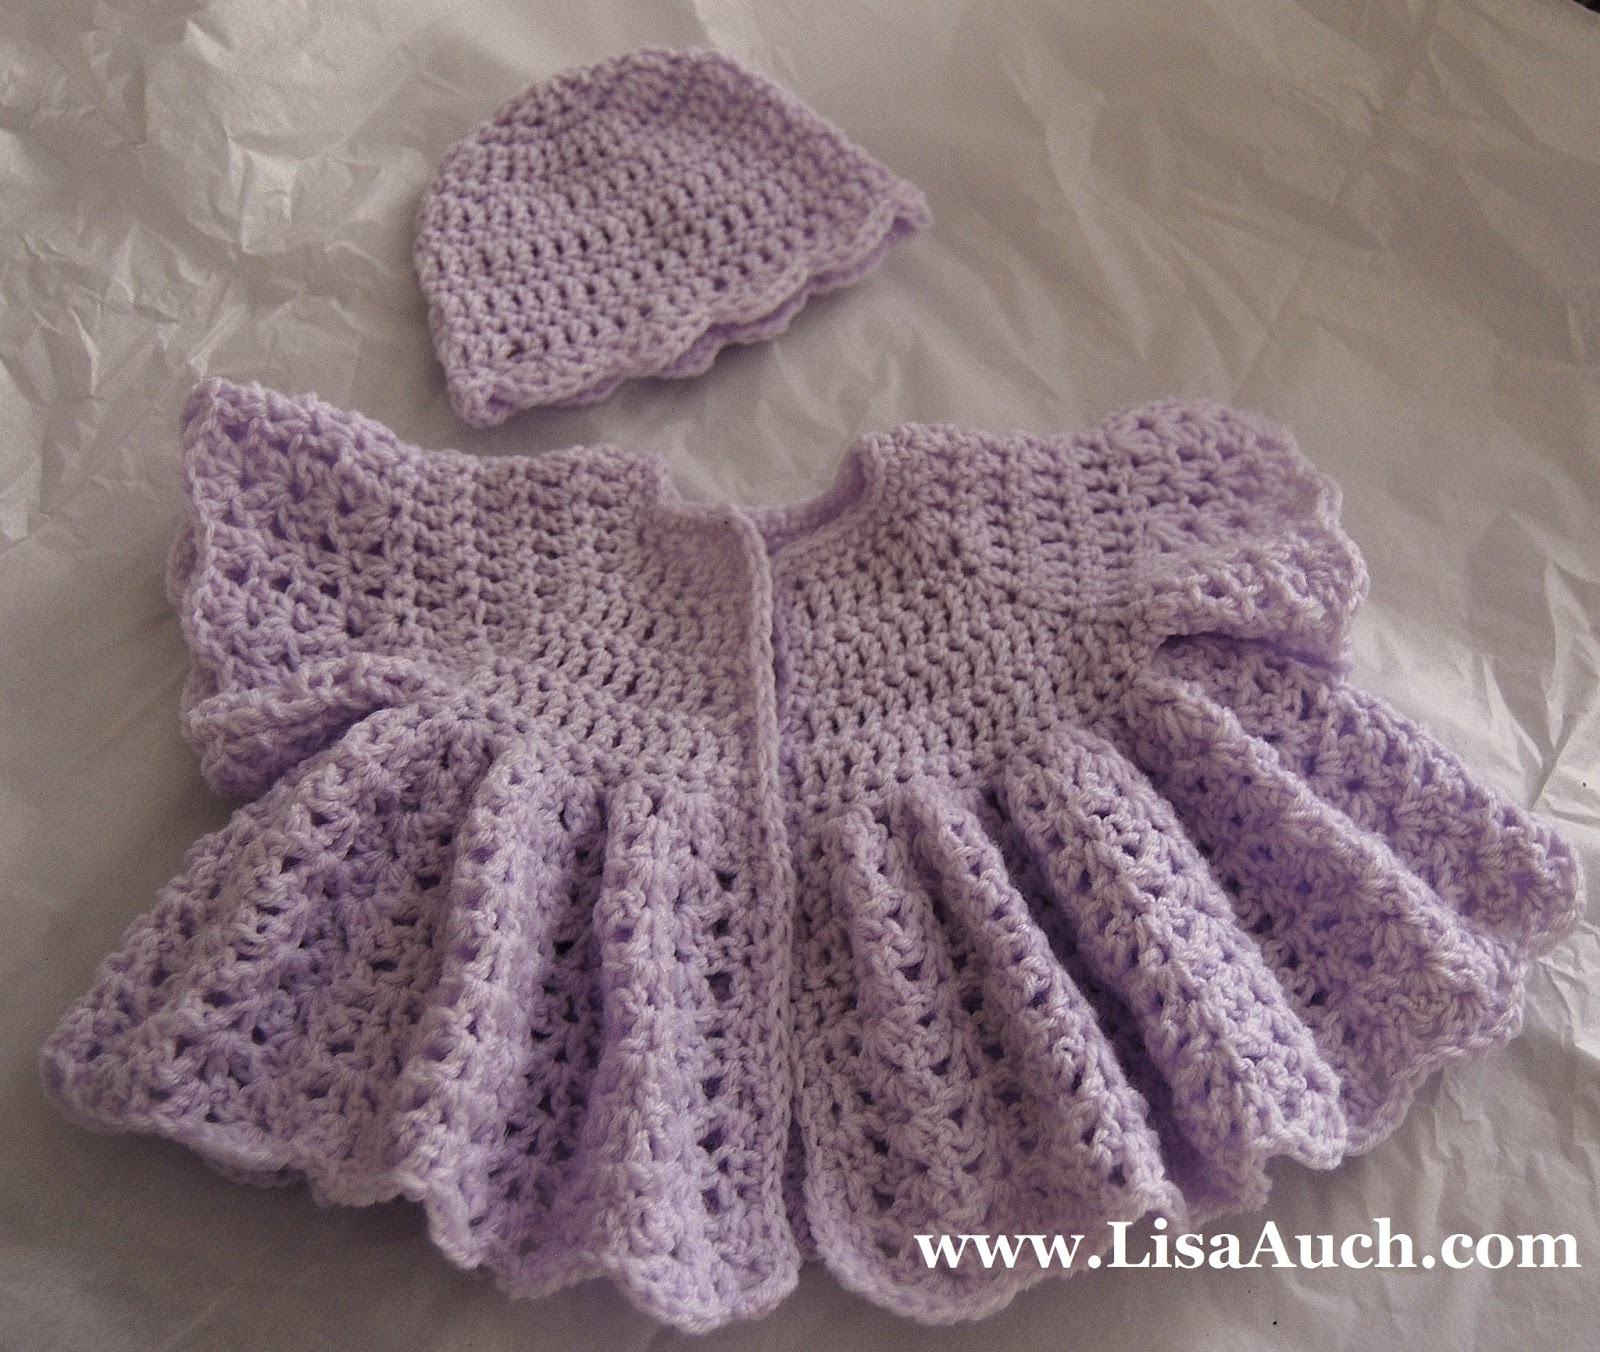 Free Baby Sweater Patterns To Crochet : Free Crochet Pattern Beautiful Vintage Swing Baby Cardigan ...